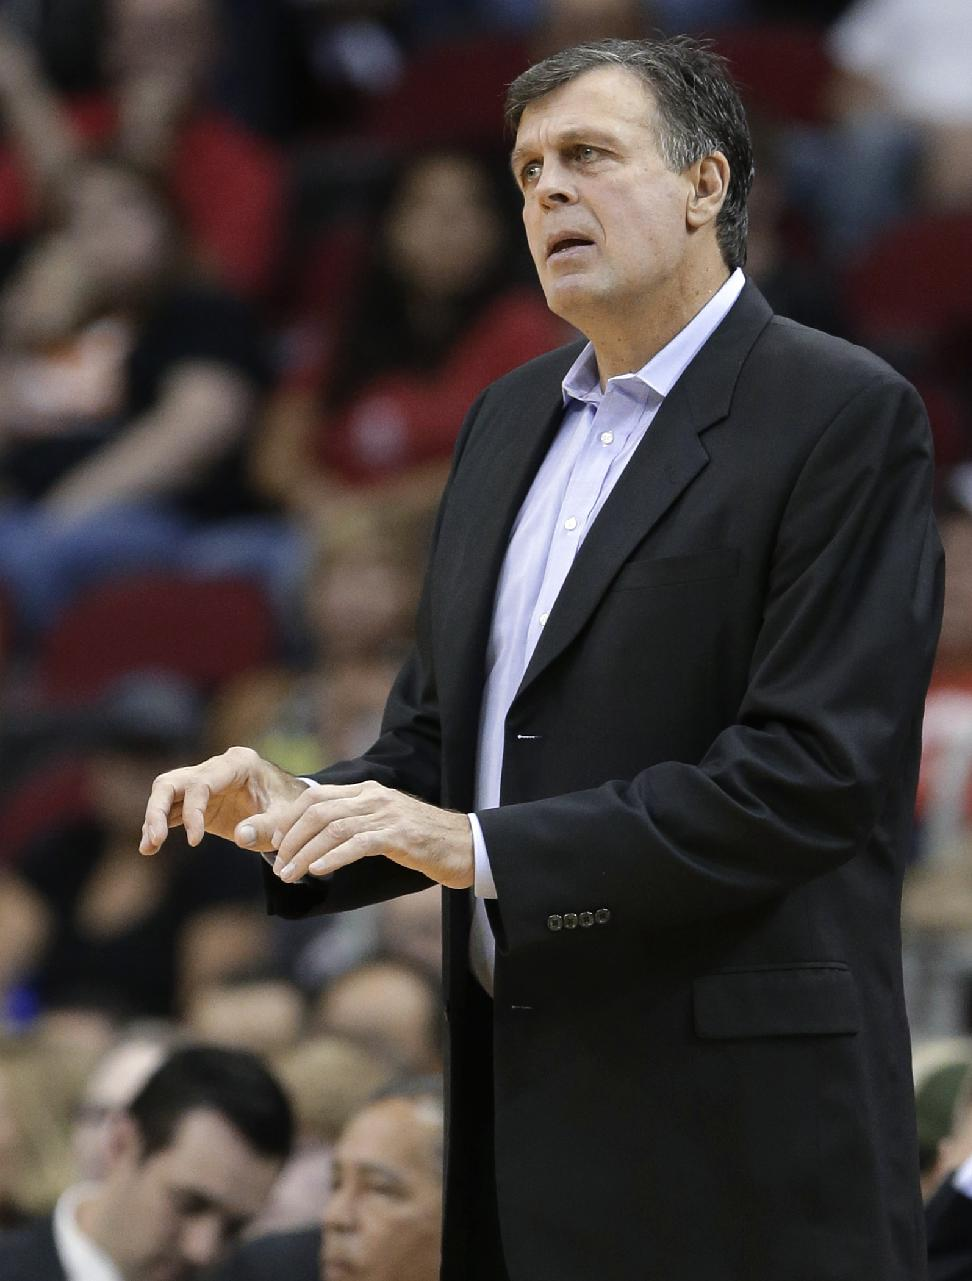 Houston Rockets coach Kevin McHale gestures to his players in the first half of an NBA preseason basketball game against the Orlando Magic on Wednesday, Oct. 16, 2013, in Houston